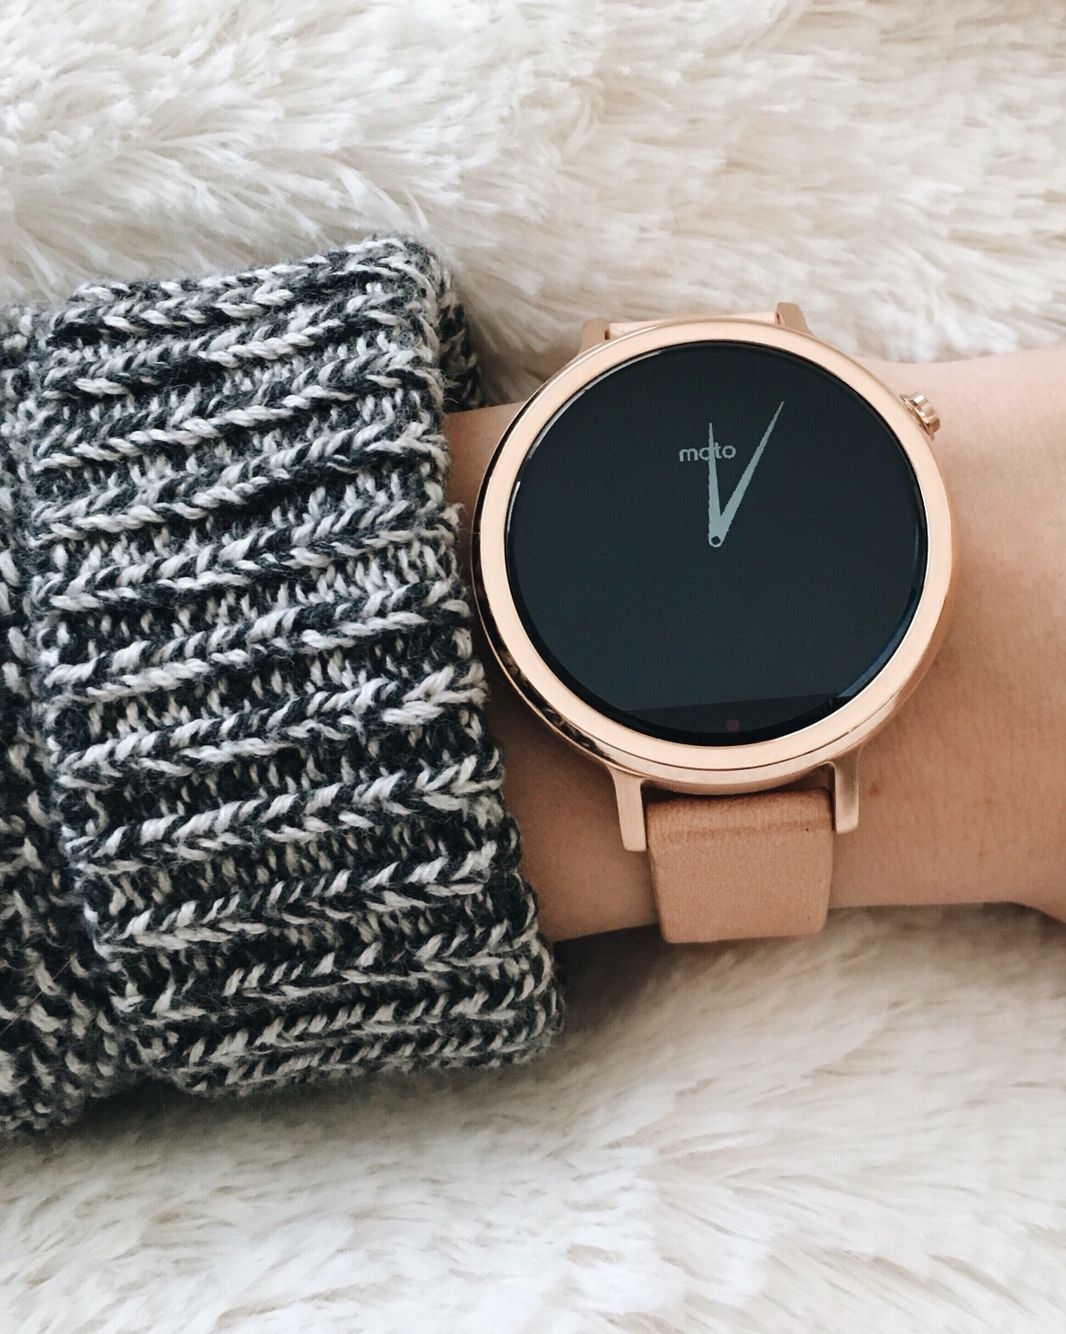 b1612d3074aef Moto 360 smartwatch in rose gold for women love this watch